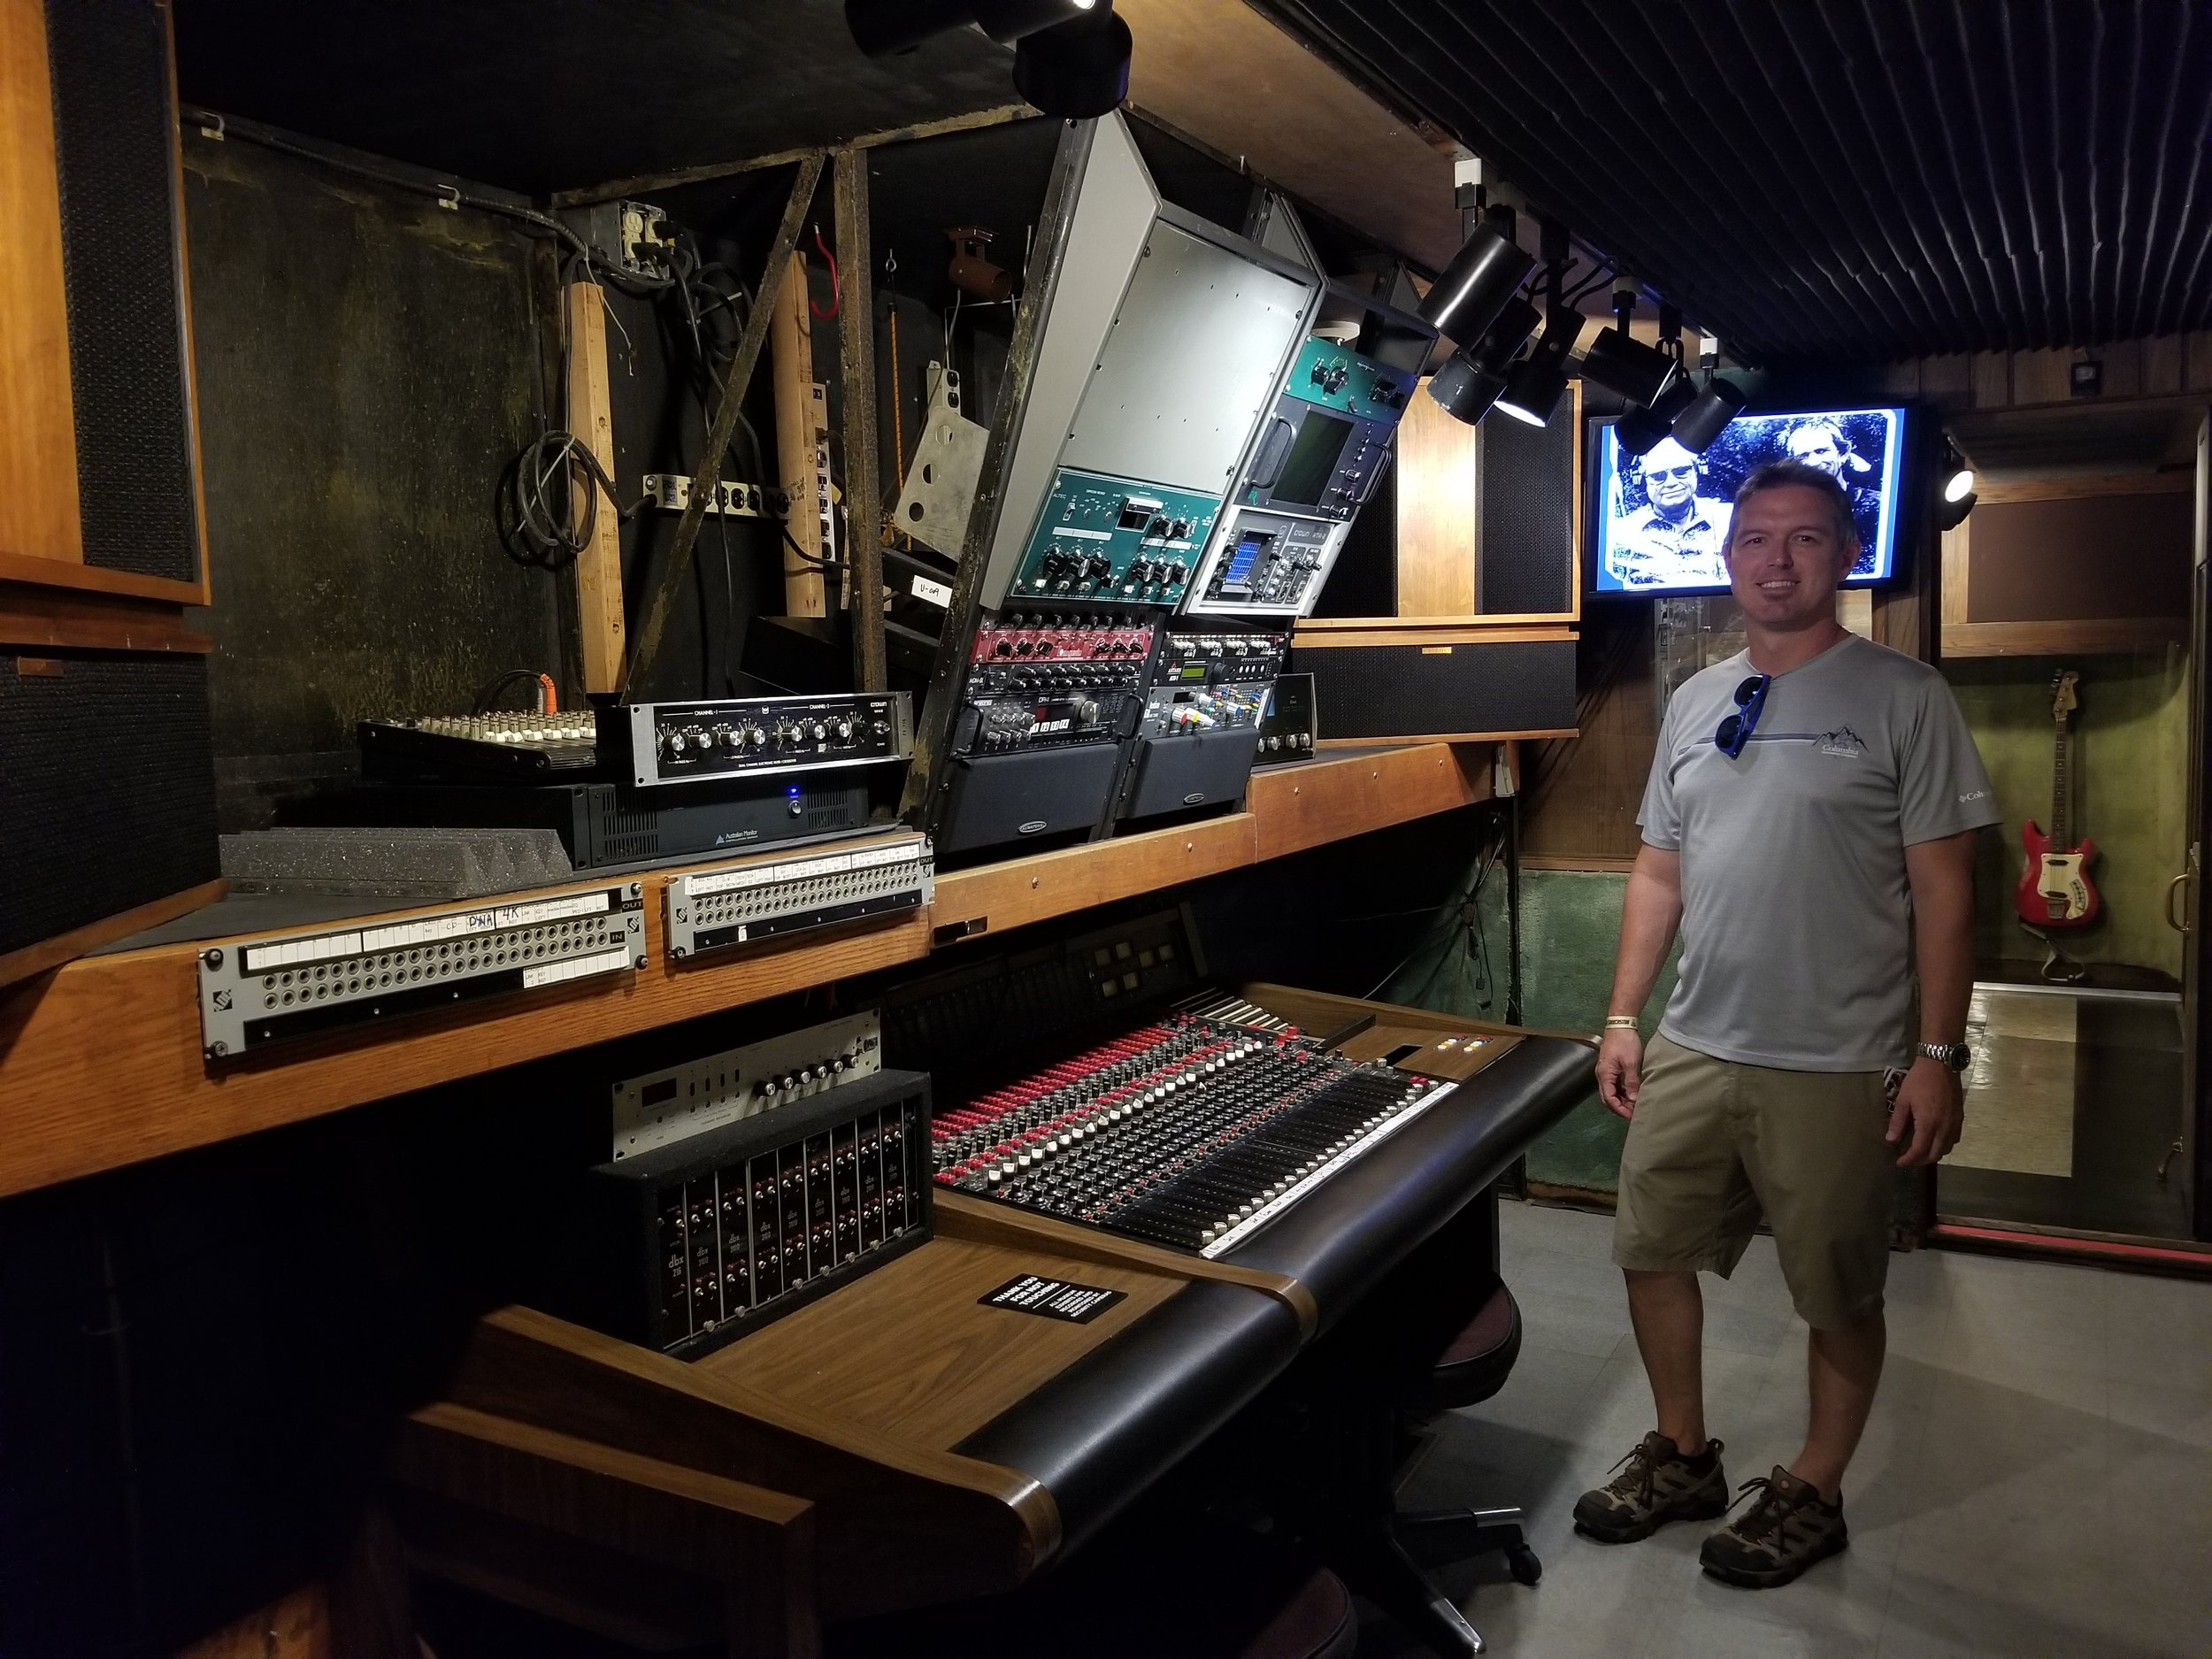 The bands and artists who recorded with Enactron included Black Sabbath, Johnny Nelson, Willie Nelson, Jimmy Buffet, Bob Dylan, James Taylor, Bette Midler and Barbara Streisand